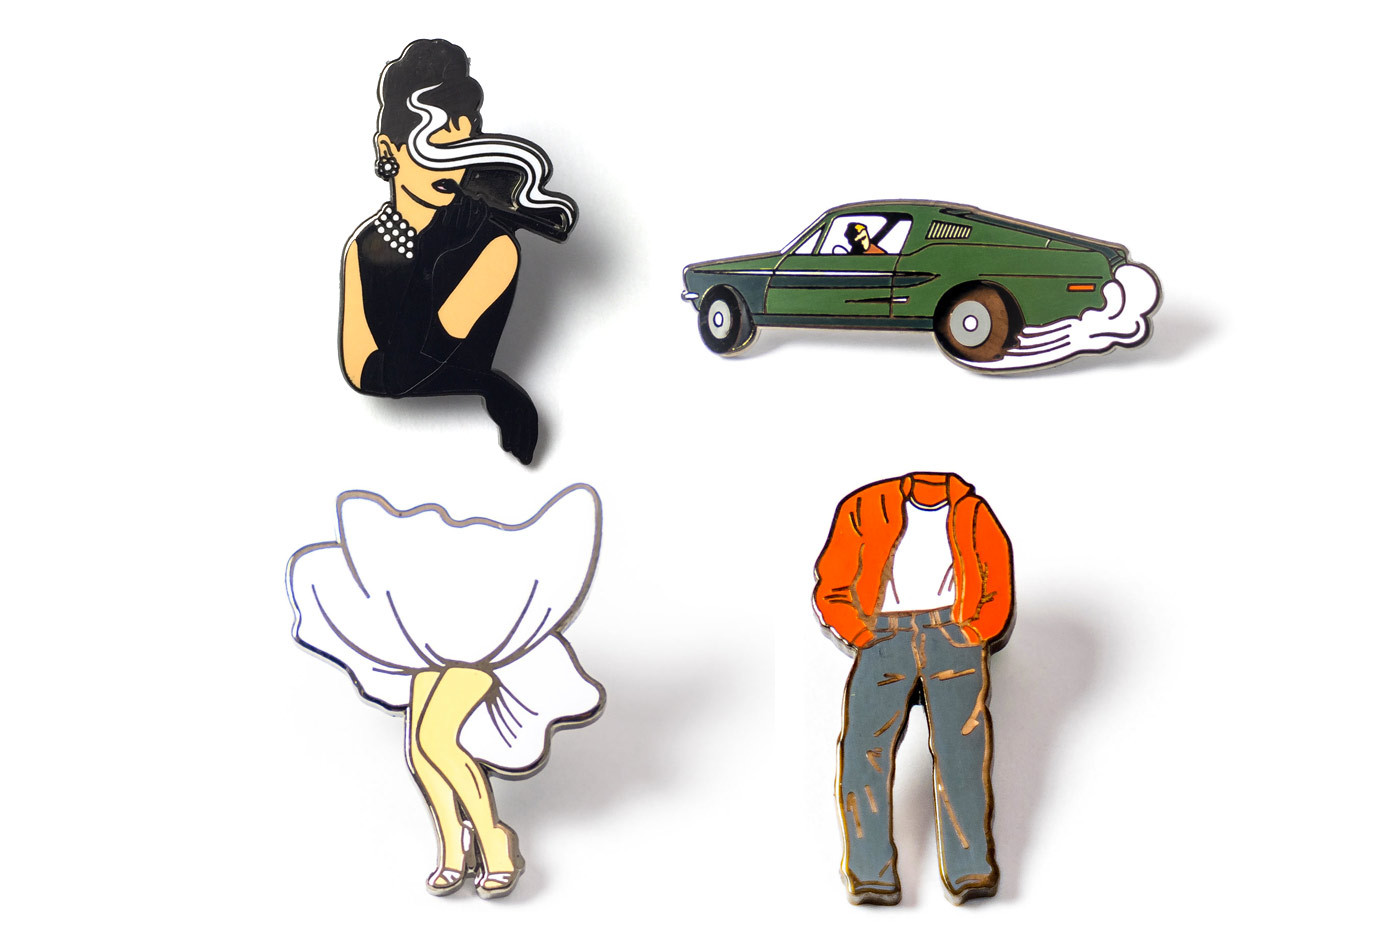 http://www.pintrill.com/collections/specials/products/icons-pin-pack?variant=11728525444